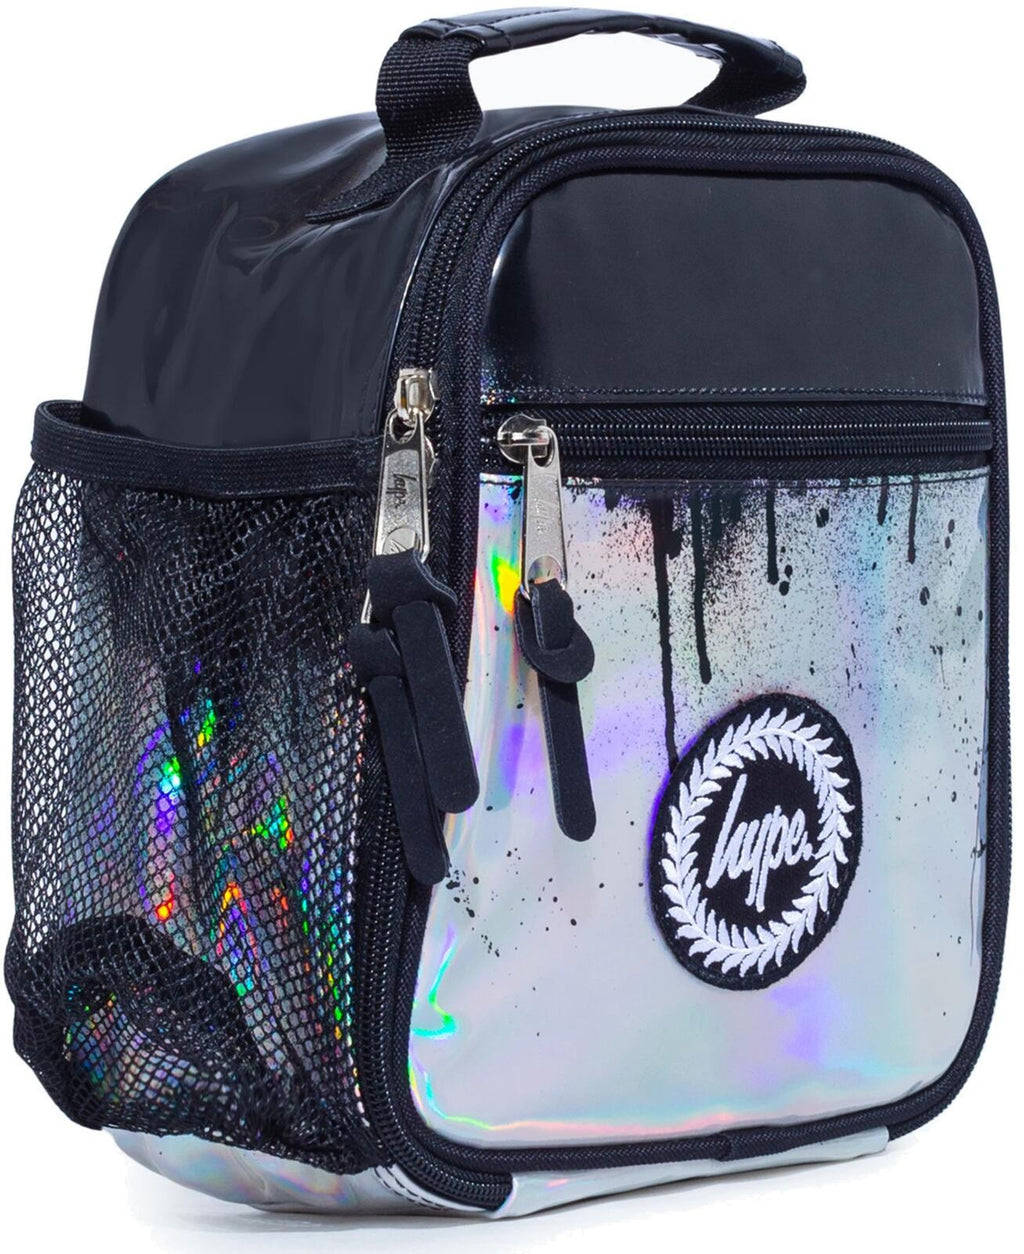 Hype Holo Drips Lunch Box Bag Multi